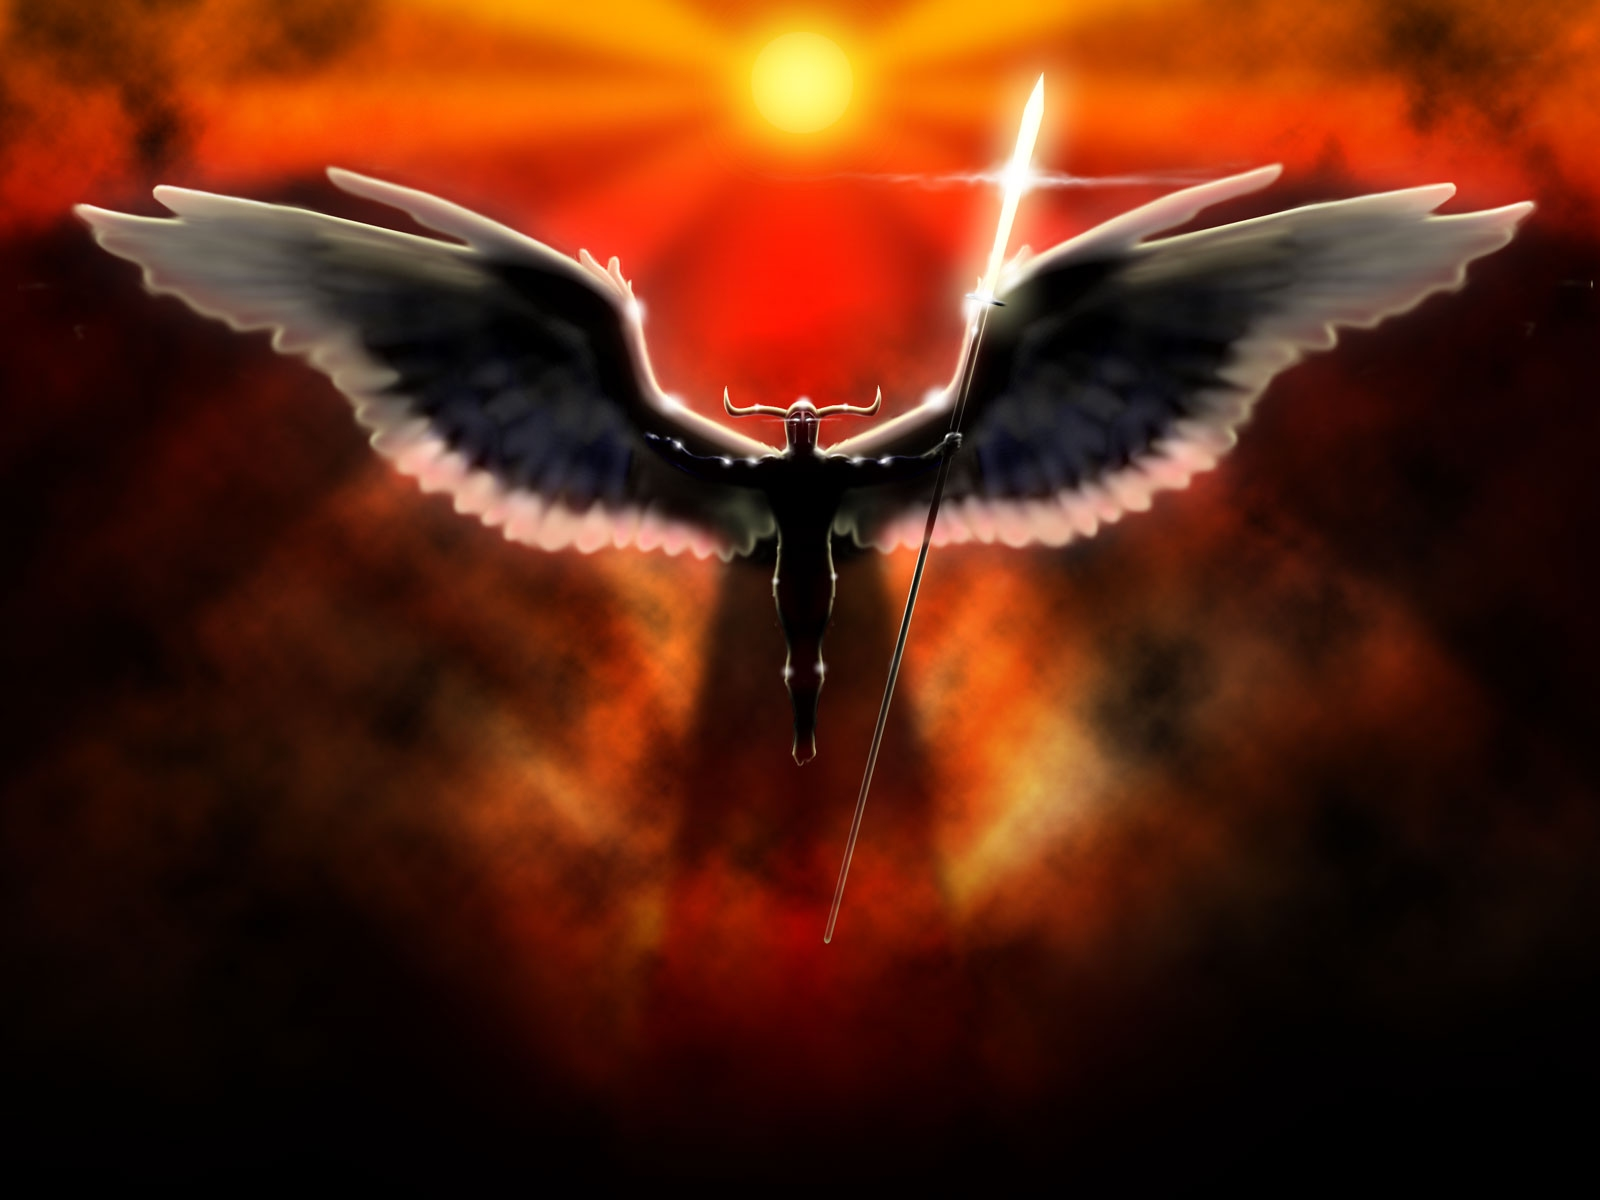 http://4.bp.blogspot.com/-MuzH5Cto76c/T2hPOuJNvvI/AAAAAAAAAuU/g6r5K5B-g-o/s1600/47-hd-wallpapers-evil-angel-with-weapon.jpg